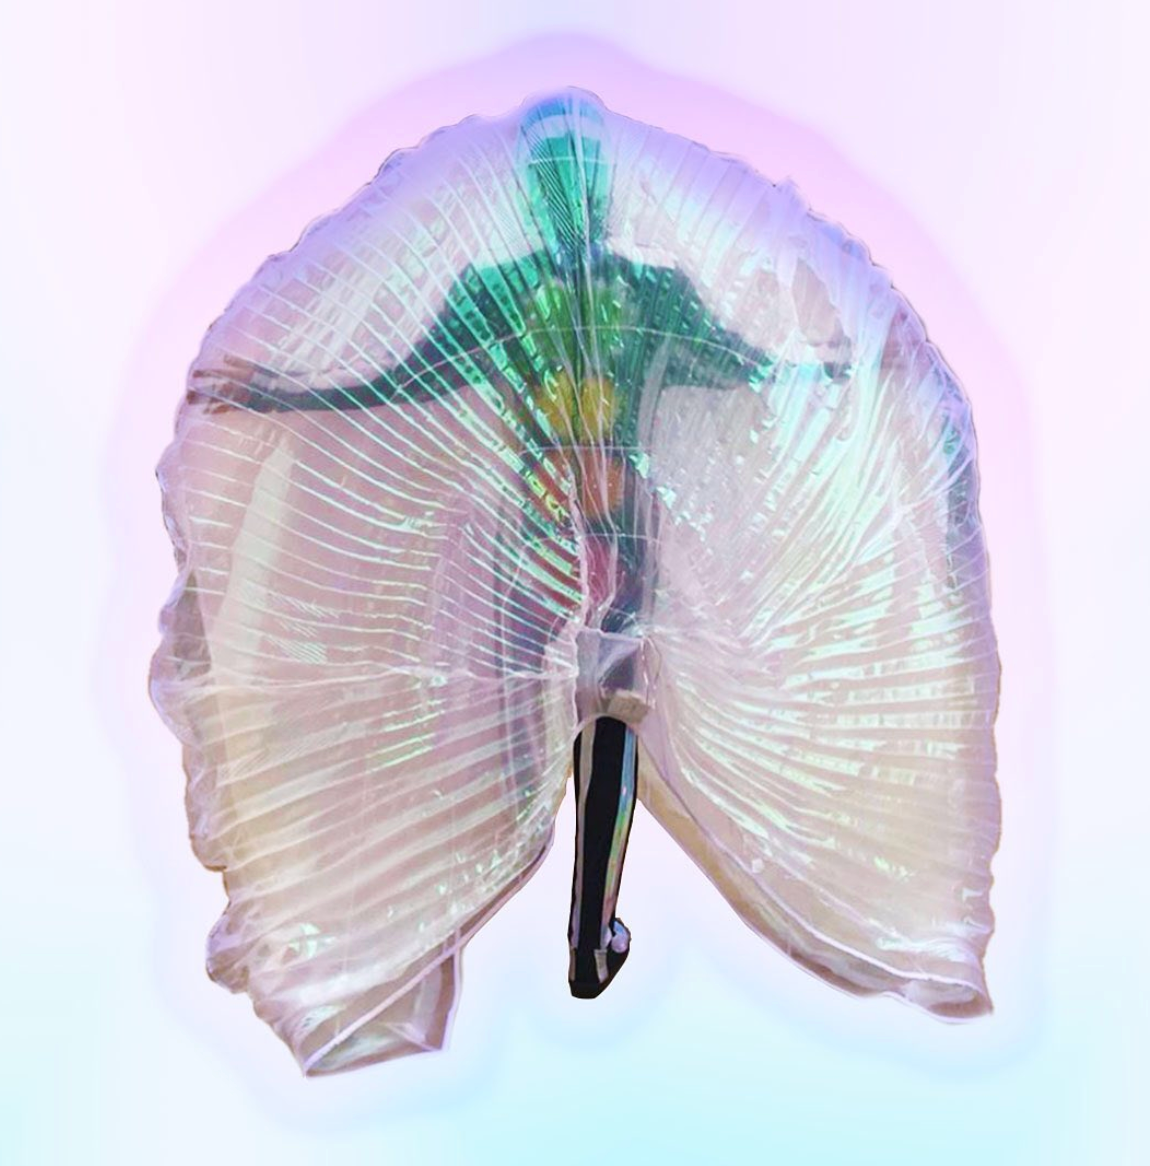 Berenike Corcuera Ketheric Body Cape (holographic LED lining), 2019 White nylon crinoline panels and transparent shimmer polyester with integrated LED lights